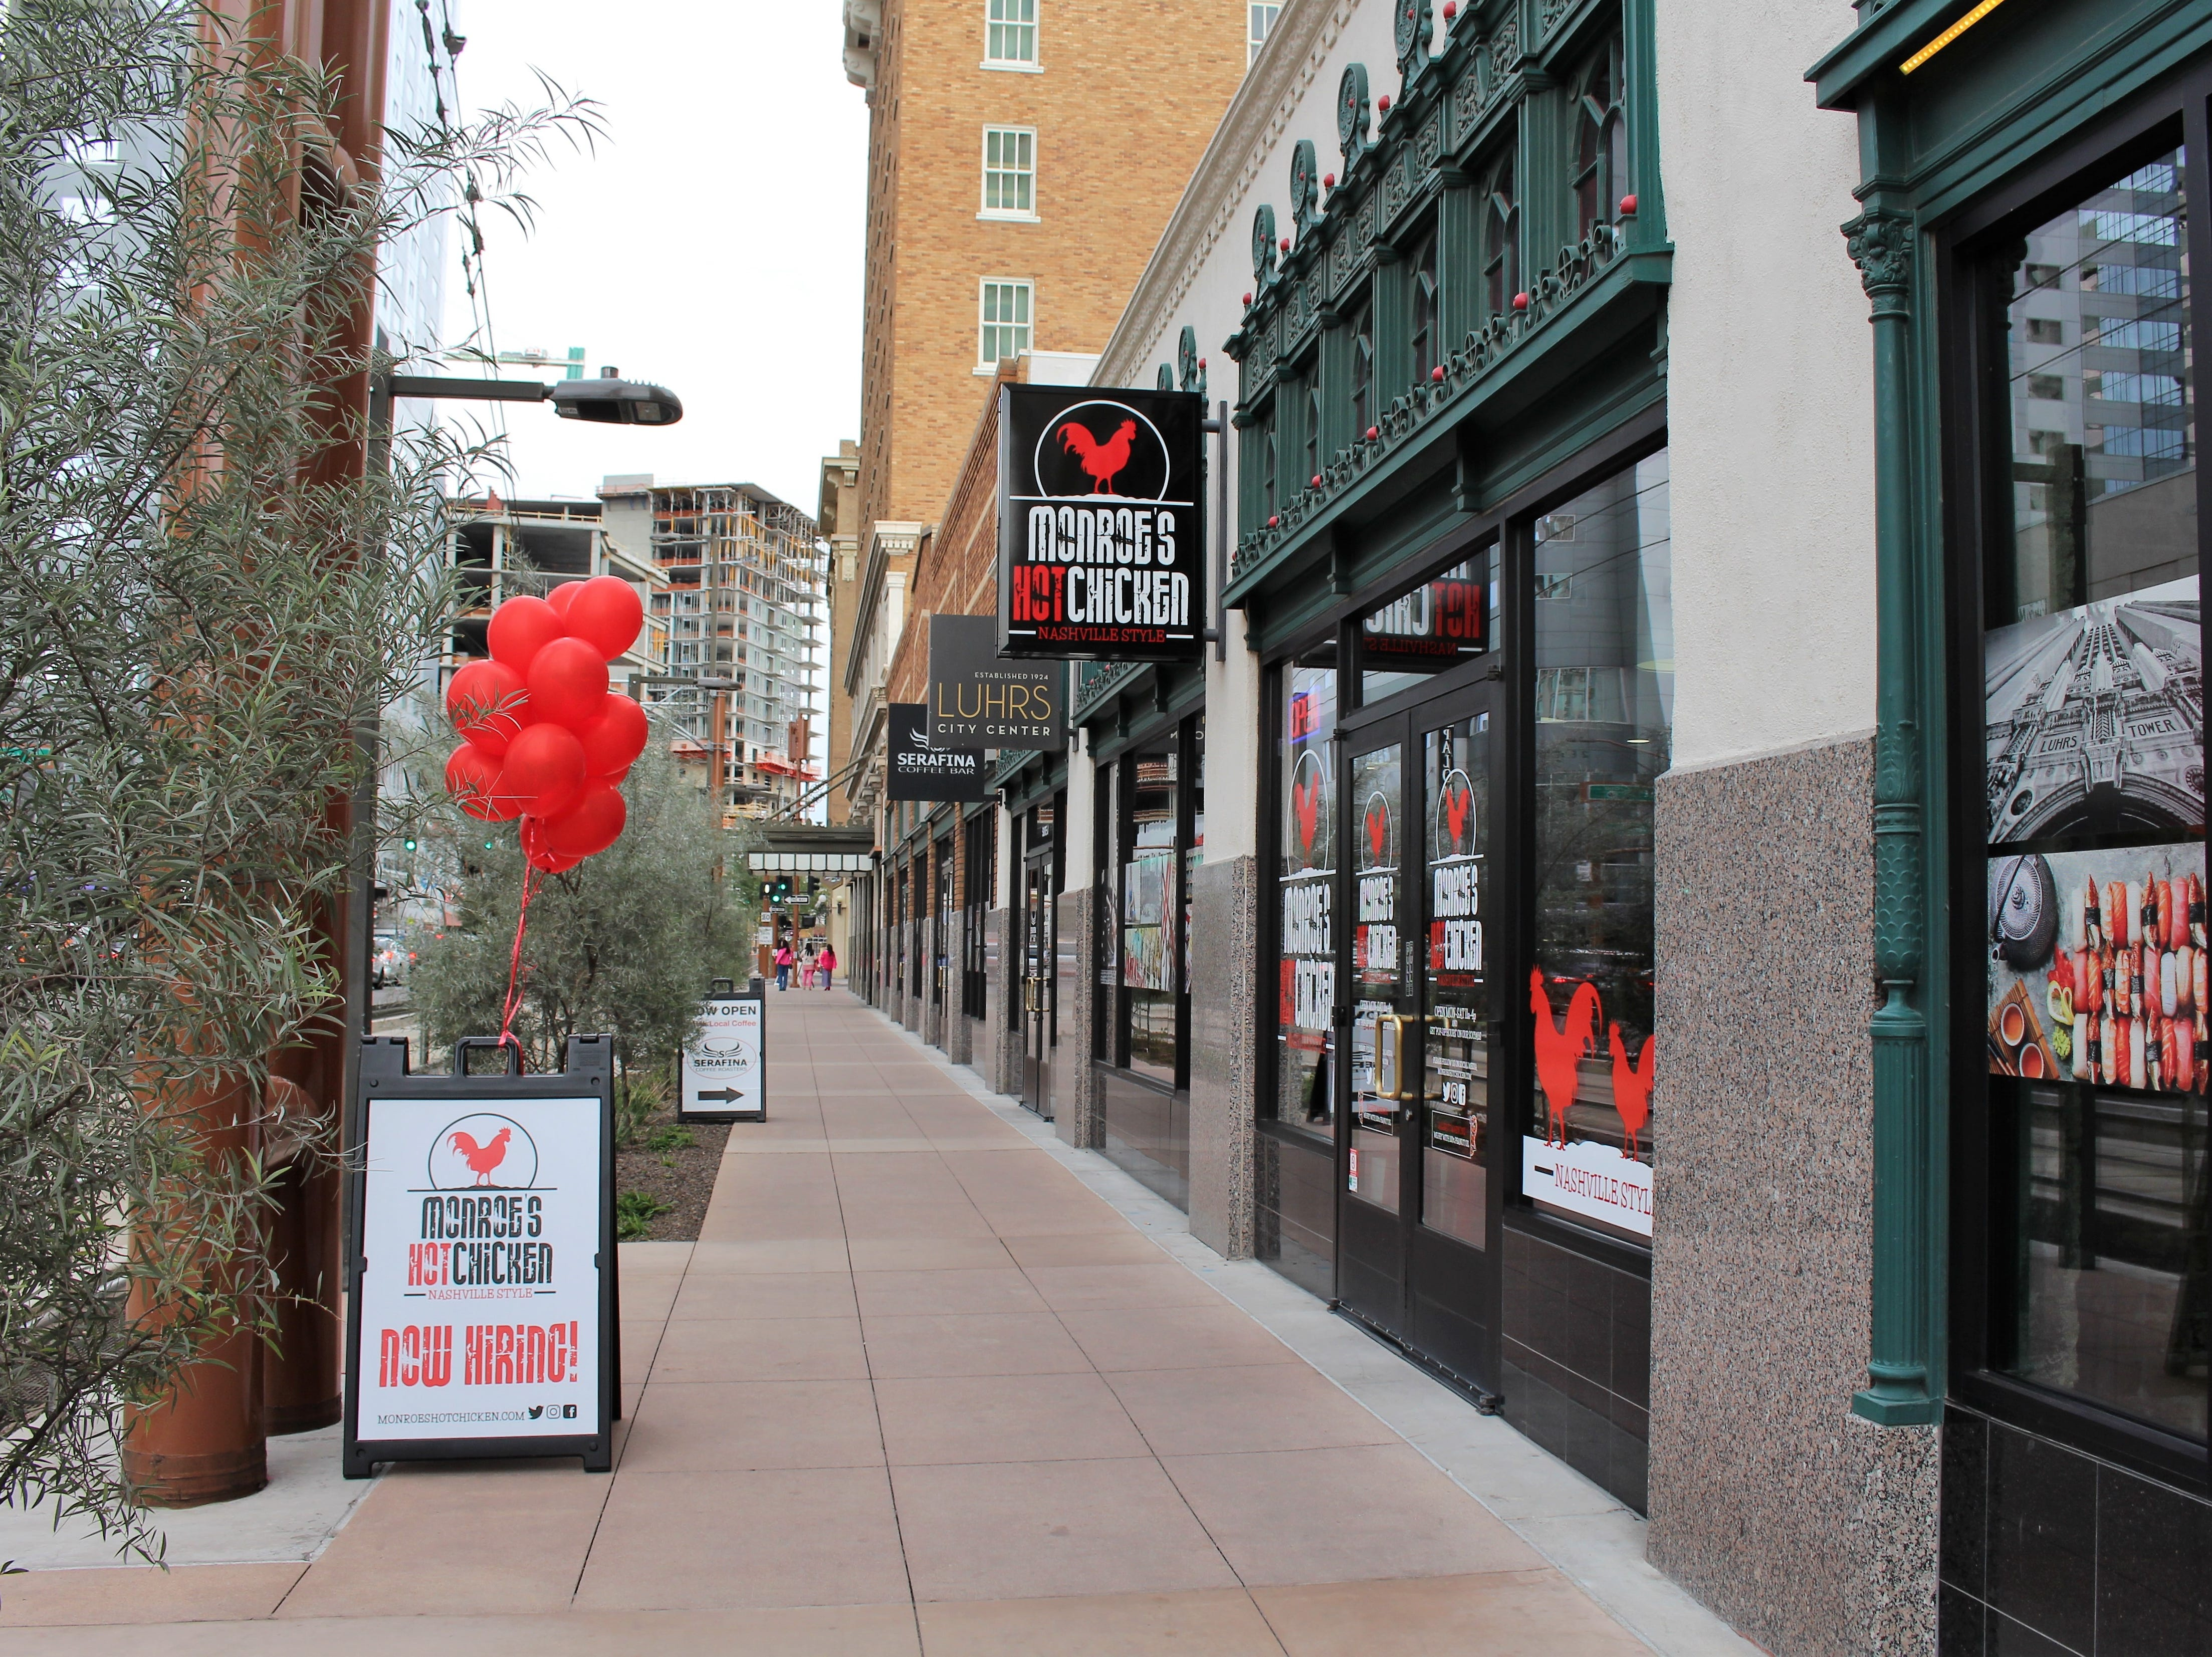 Monroe's Hot Chicken is located on the ground floor of the historic Lhurs Tower in downtown Phoenix.